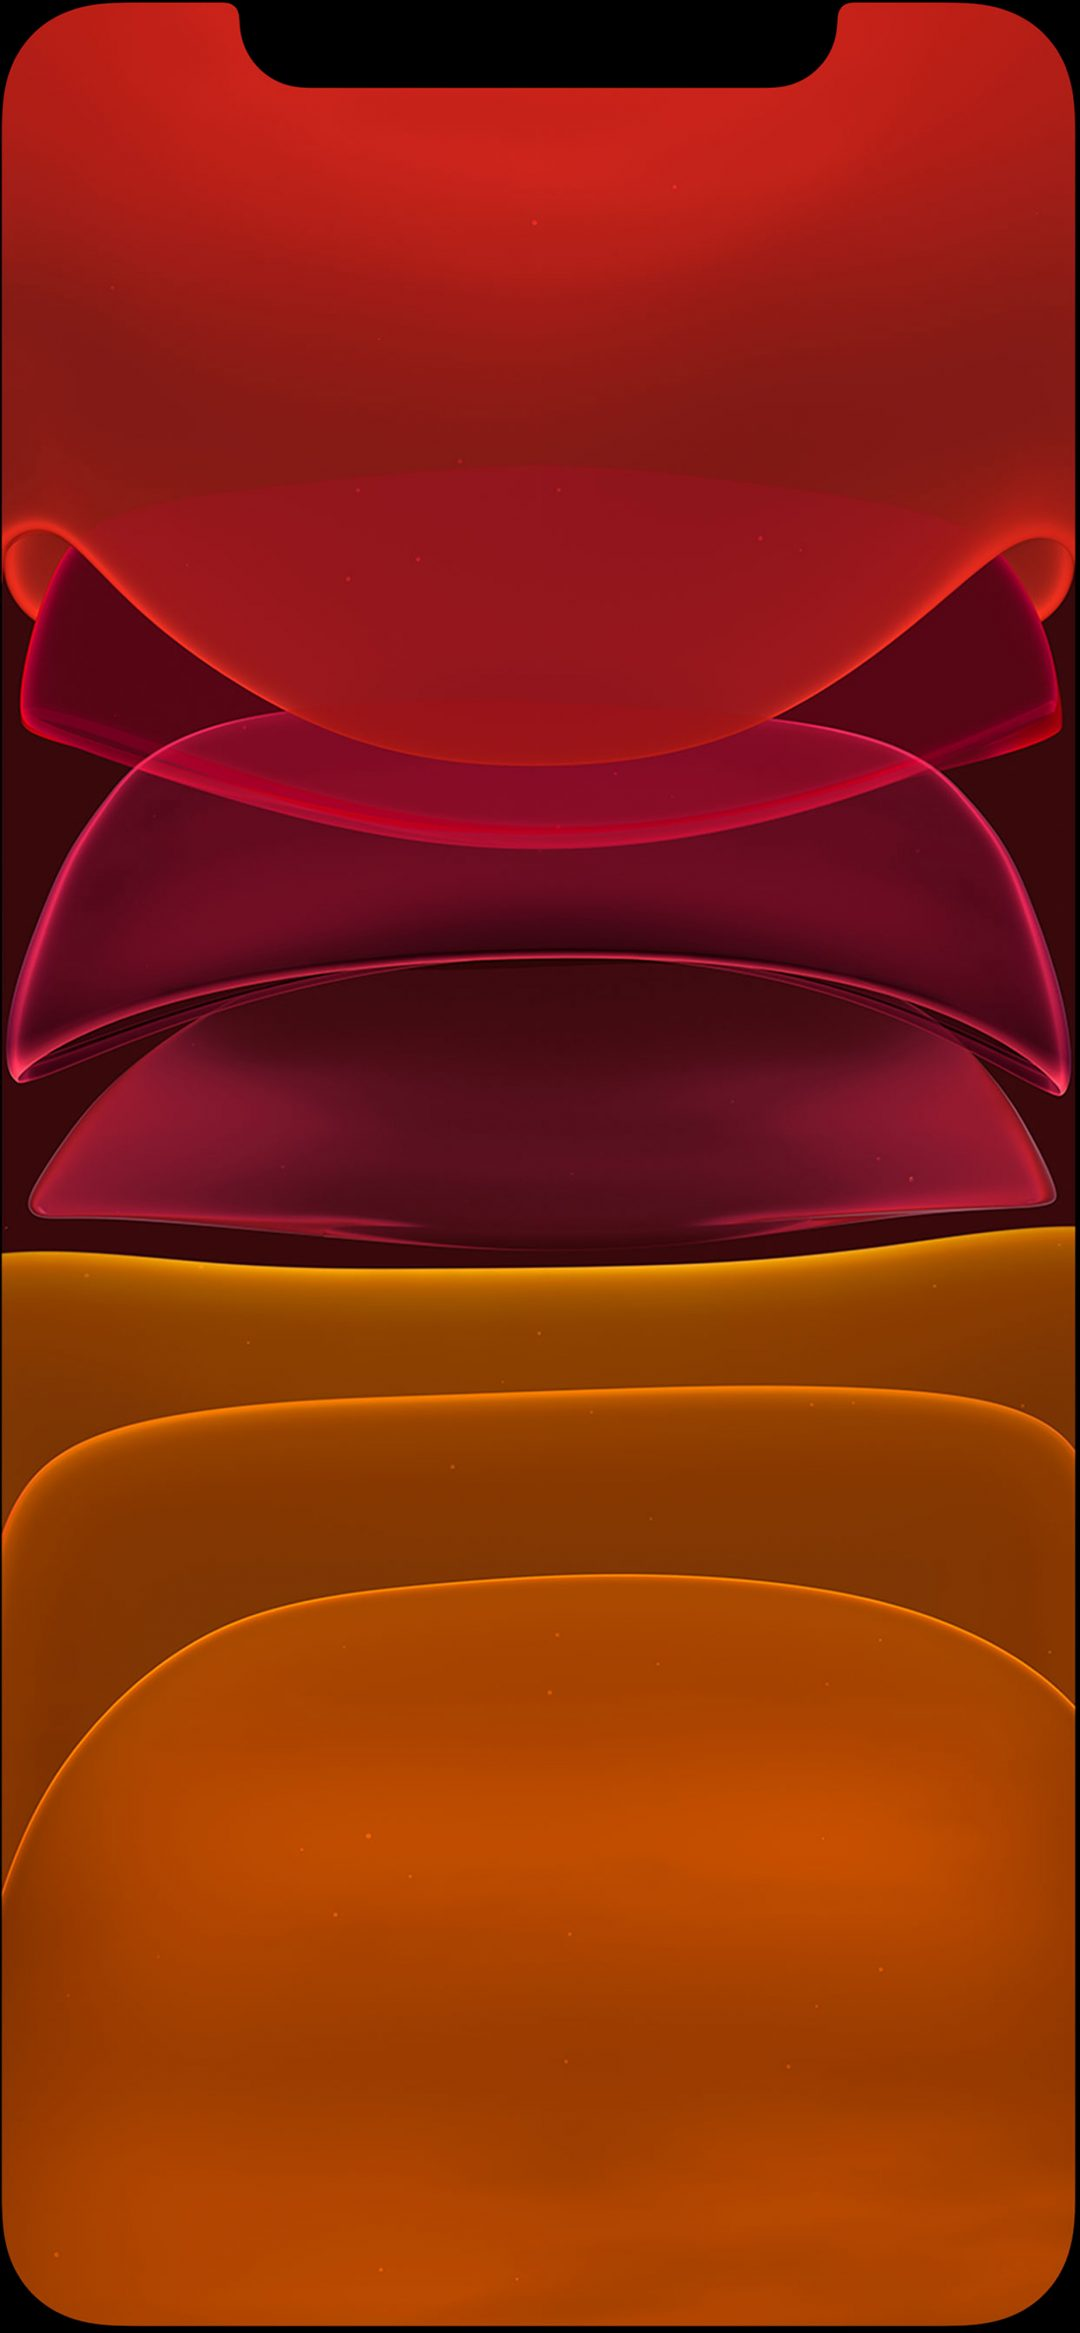 Red Wallpapers For Iphone Posted By John Walker